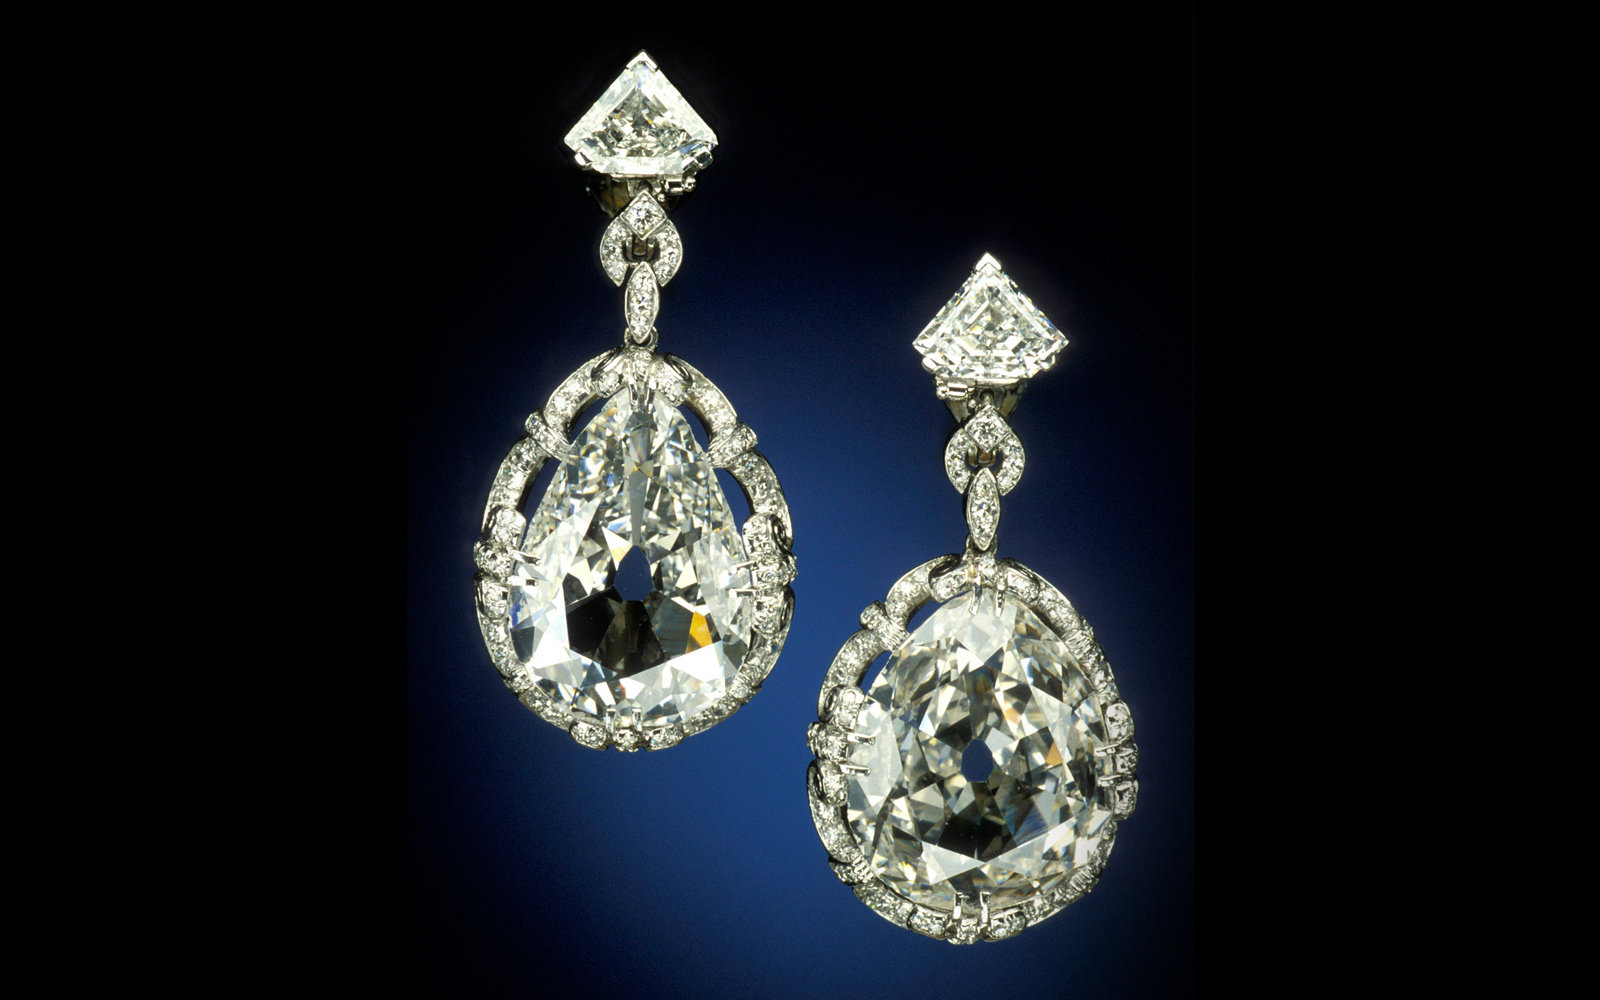 Marie Antoinette Earrings, Smithsonian Museum of Natural History, Washington, D.C.